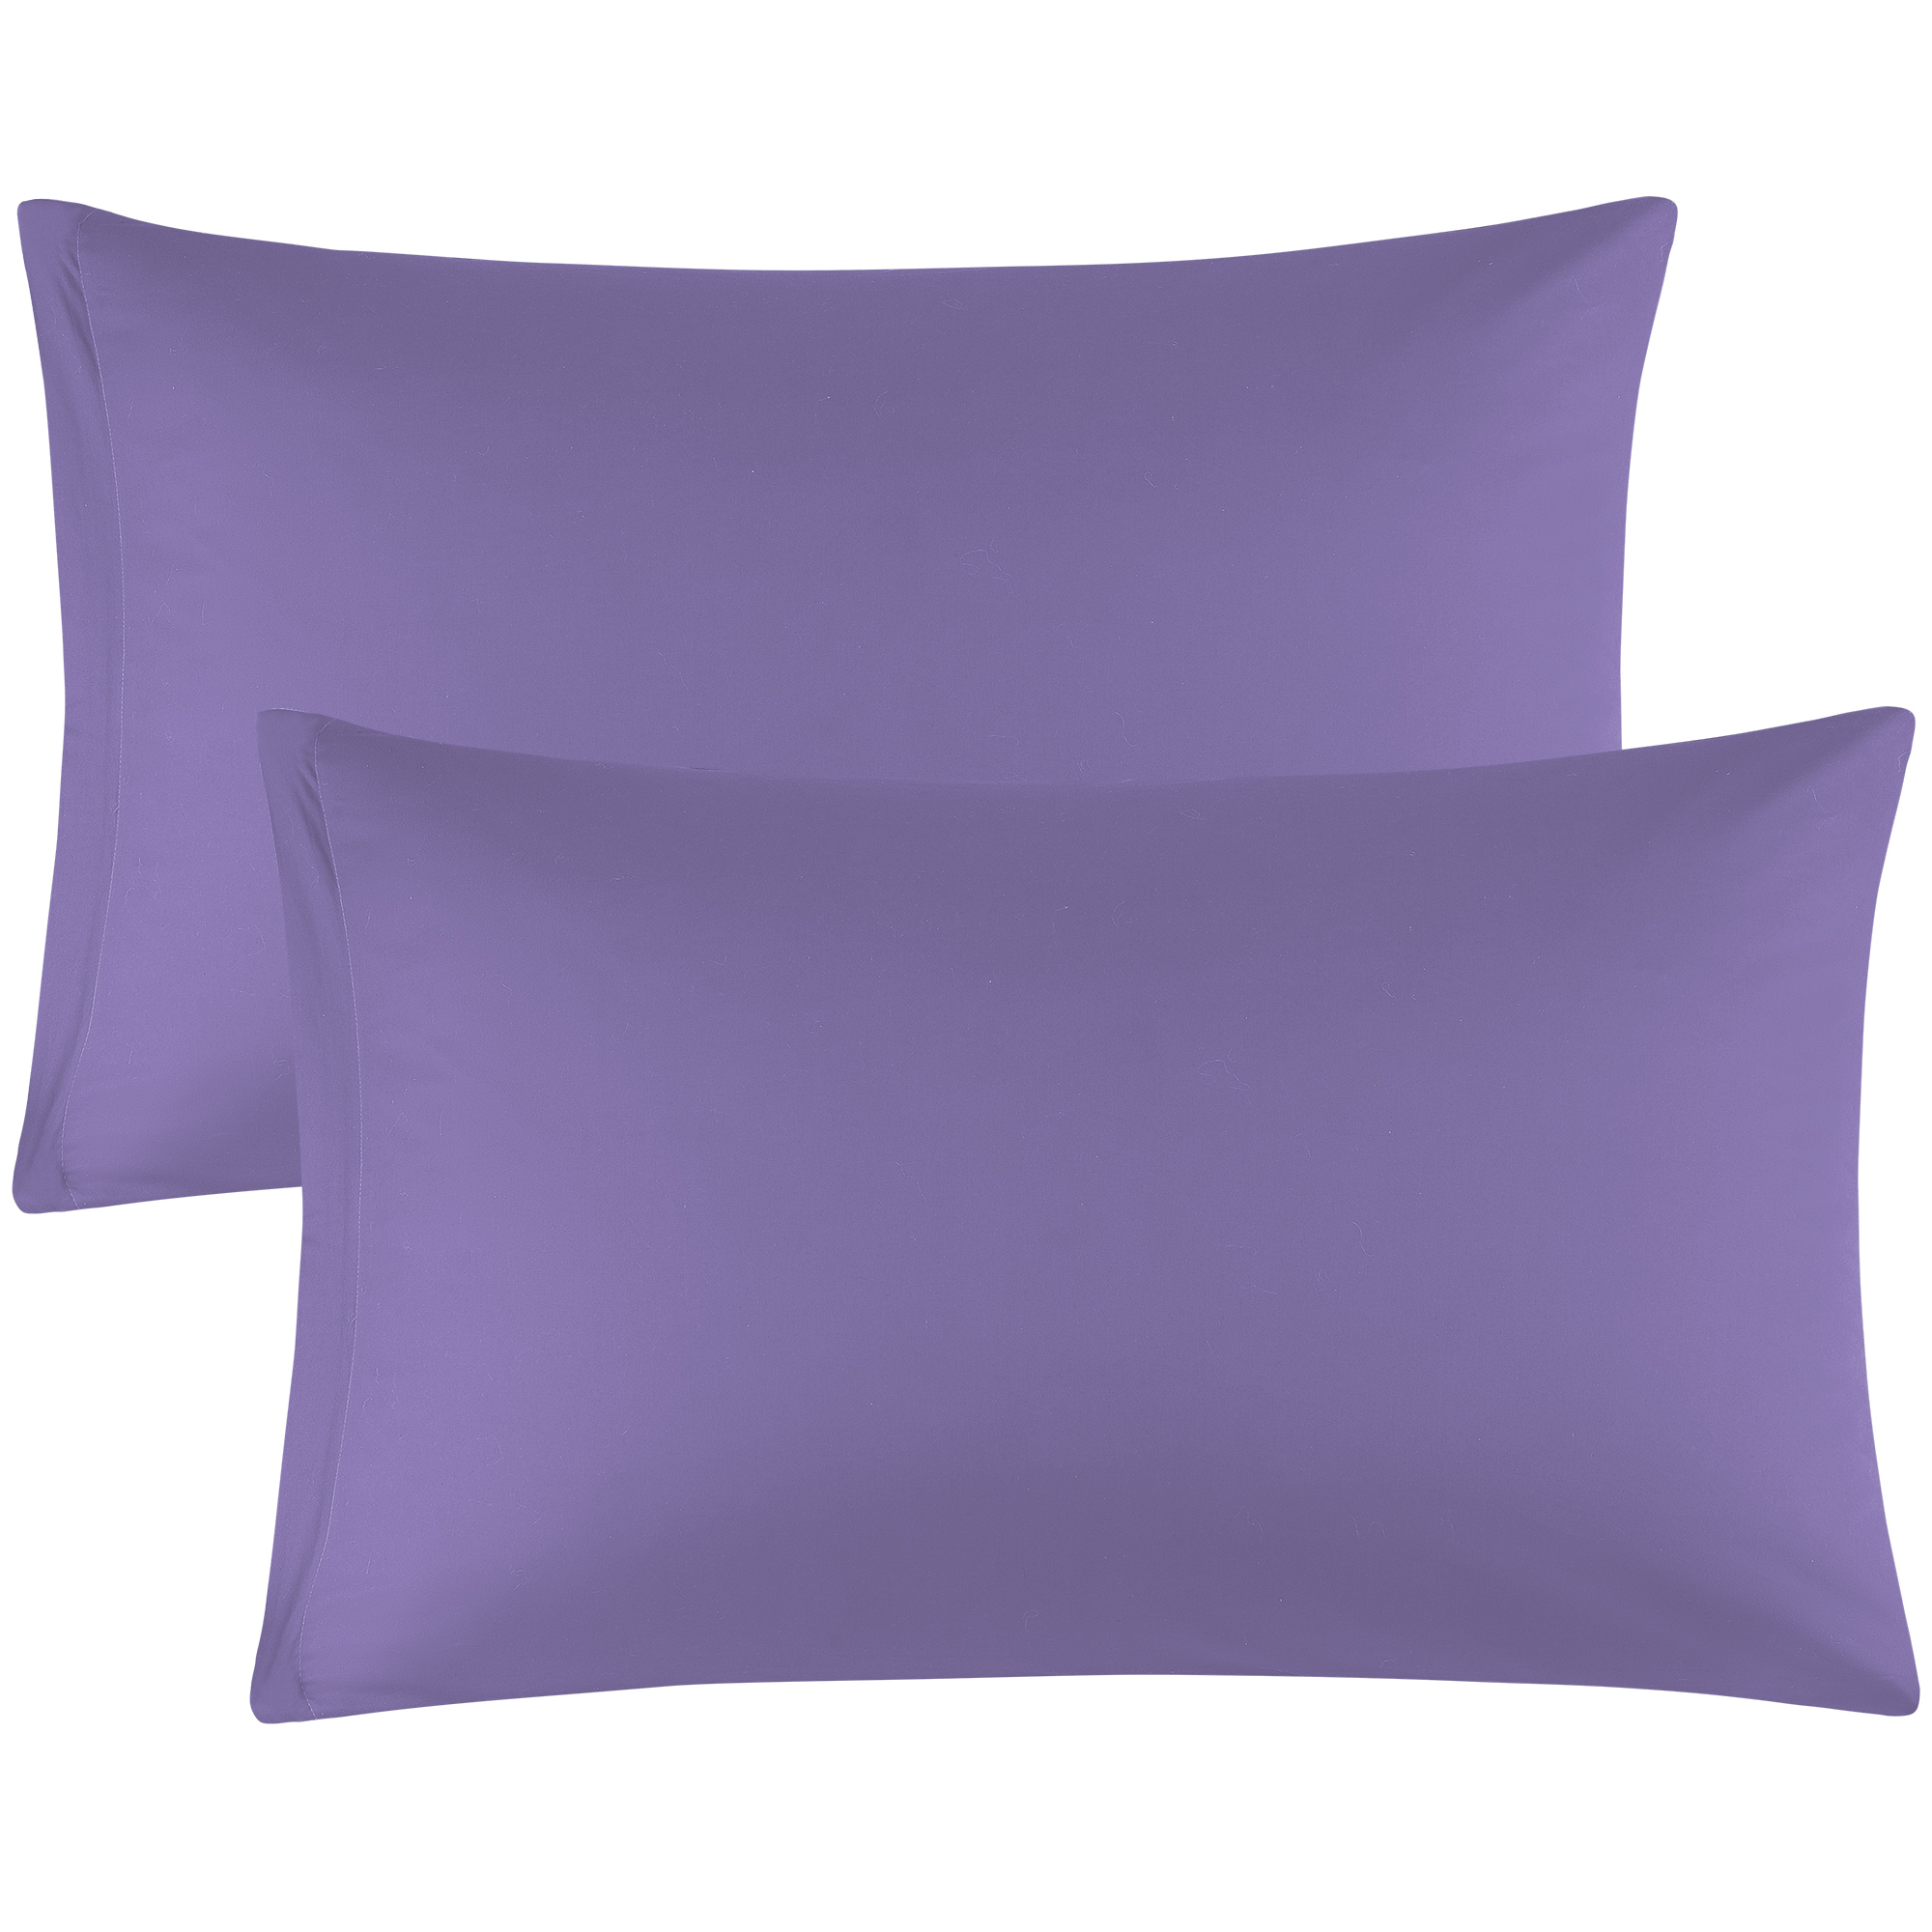 Zippered Cases Pillowcases Covers Egyptian Cotton 2-Pack (20 x 26 Inch, Purple)